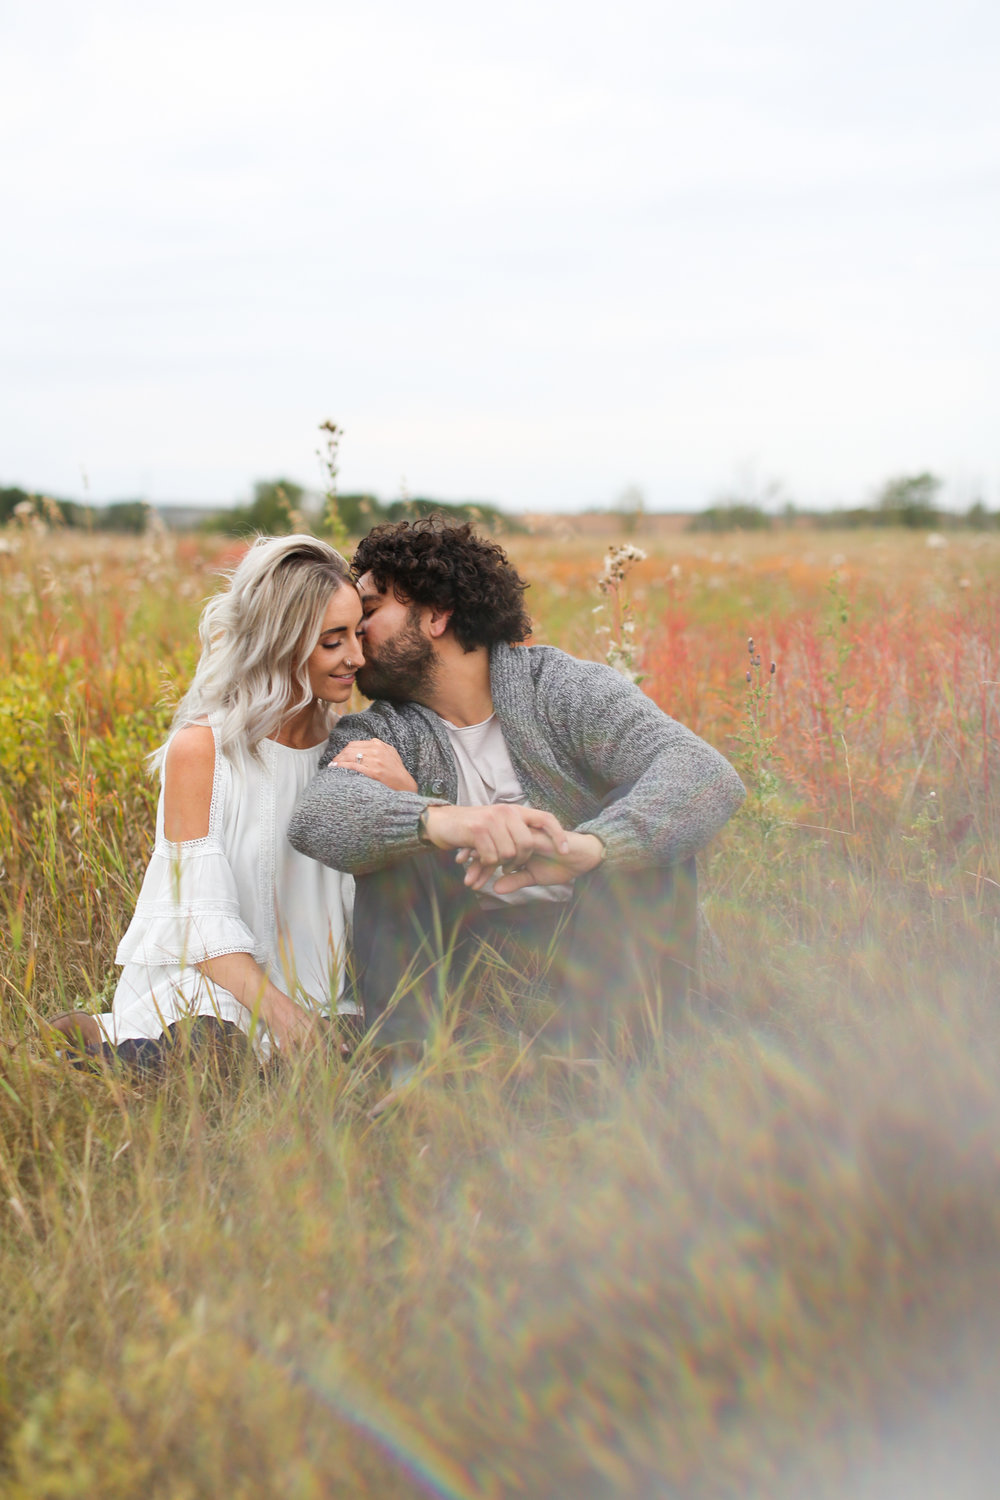 Brianna+Ian-Engagement-Blog-17.jpg